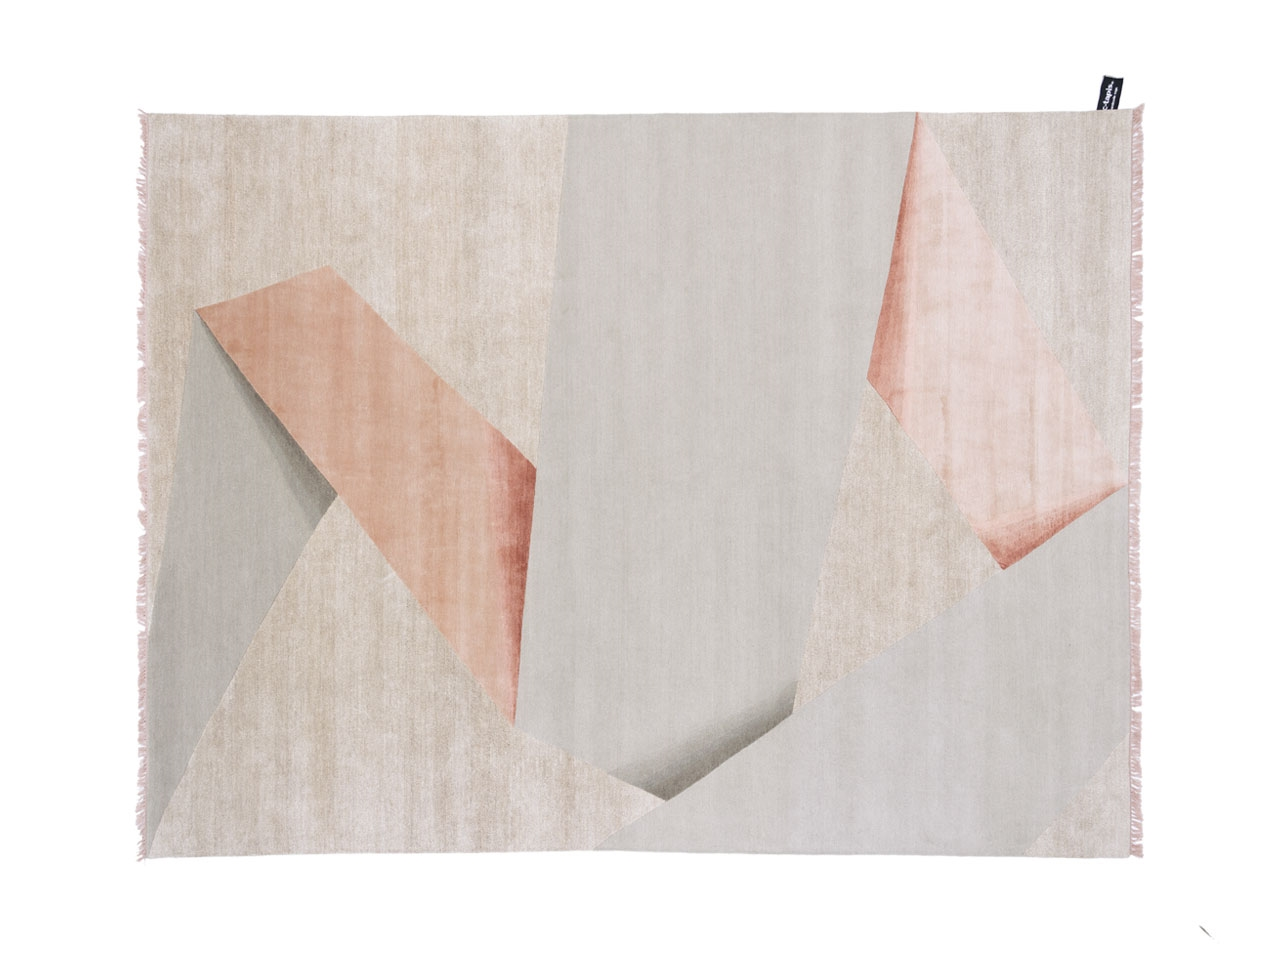 'Ribbon' from the  Dipped Collection  by the cc-tapis design team. Several variations of this design are available: 'Origami', ' Ribbon', ' Cut', 'Frame' and 'Angle' - all in beautifully soft colours.